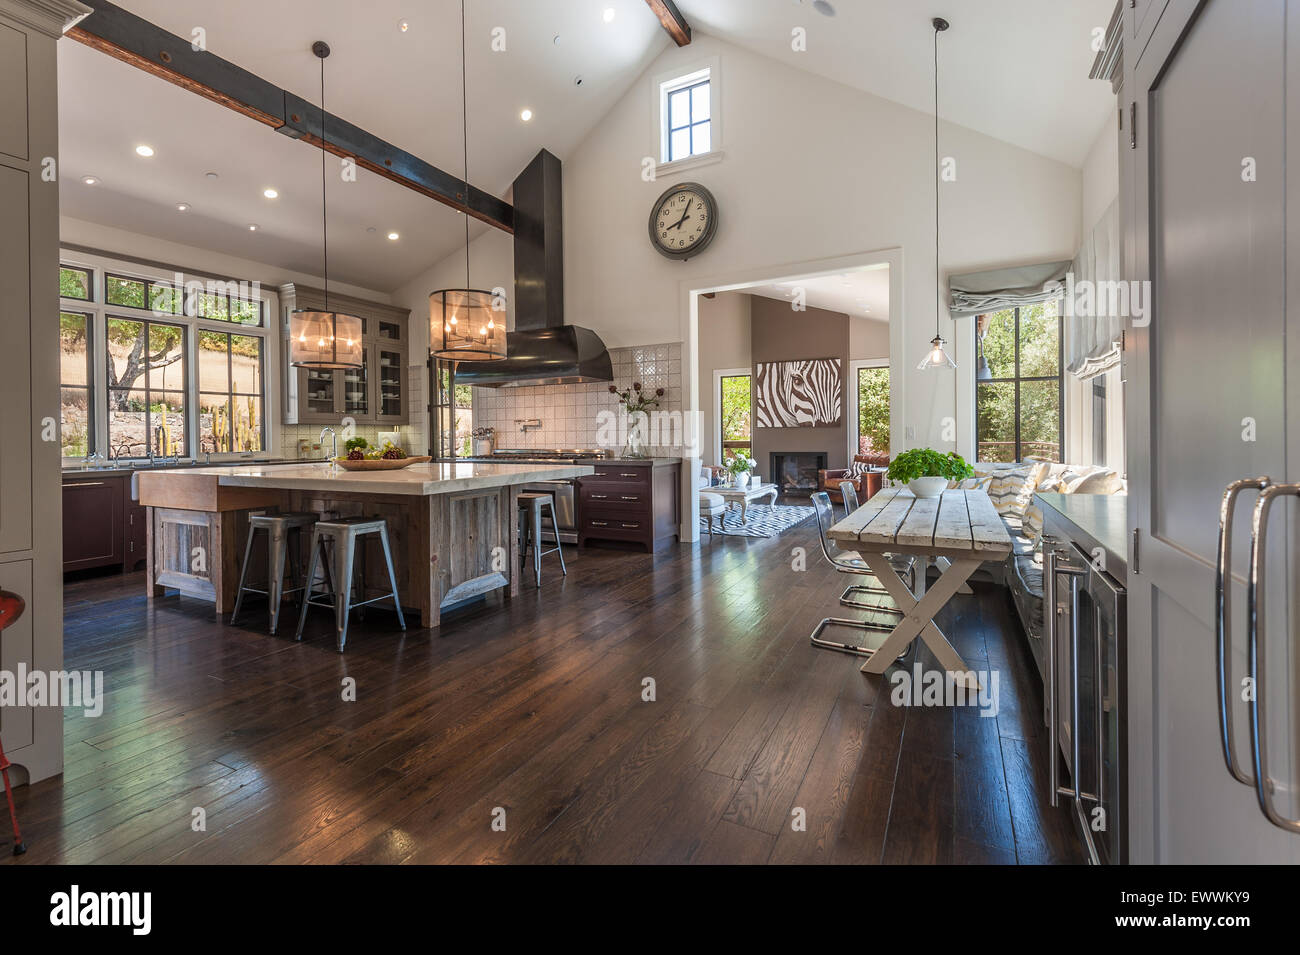 Large rustic contemporary kitchen with wood beamed vaulted ceiling